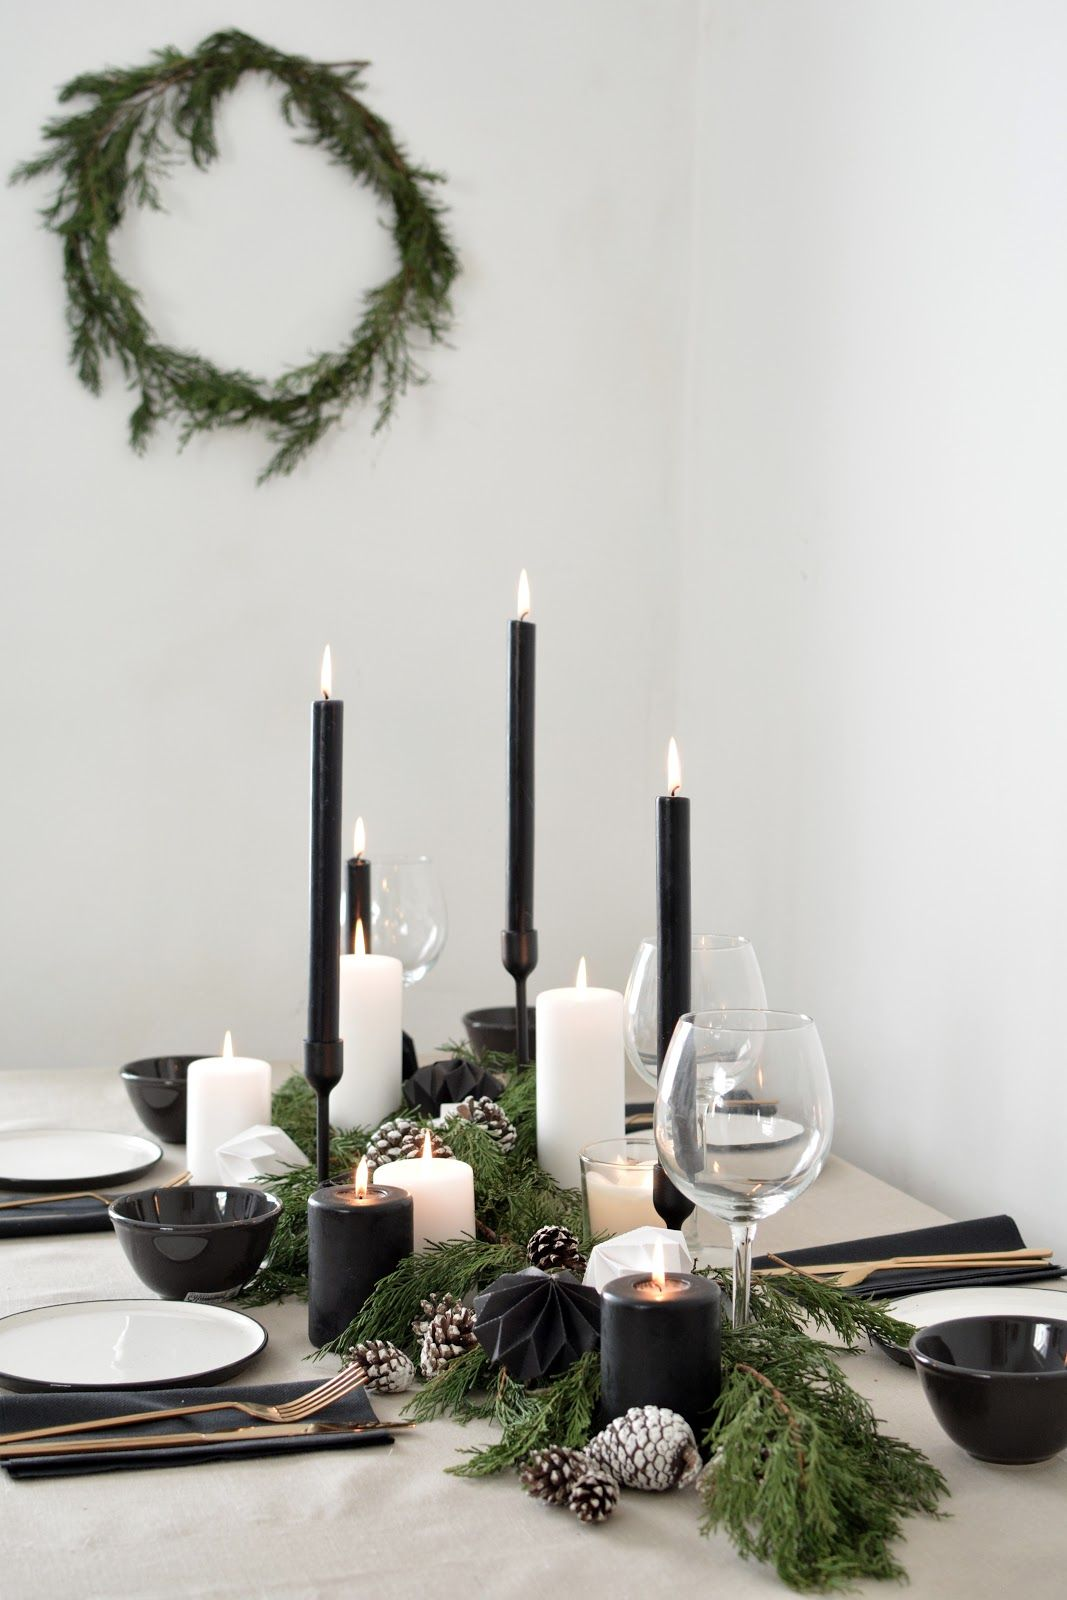 A Scandinavian Inspired Christmas Table Setting Holiday Table Decorations Christmas Table Settings Christmas Tablescapes